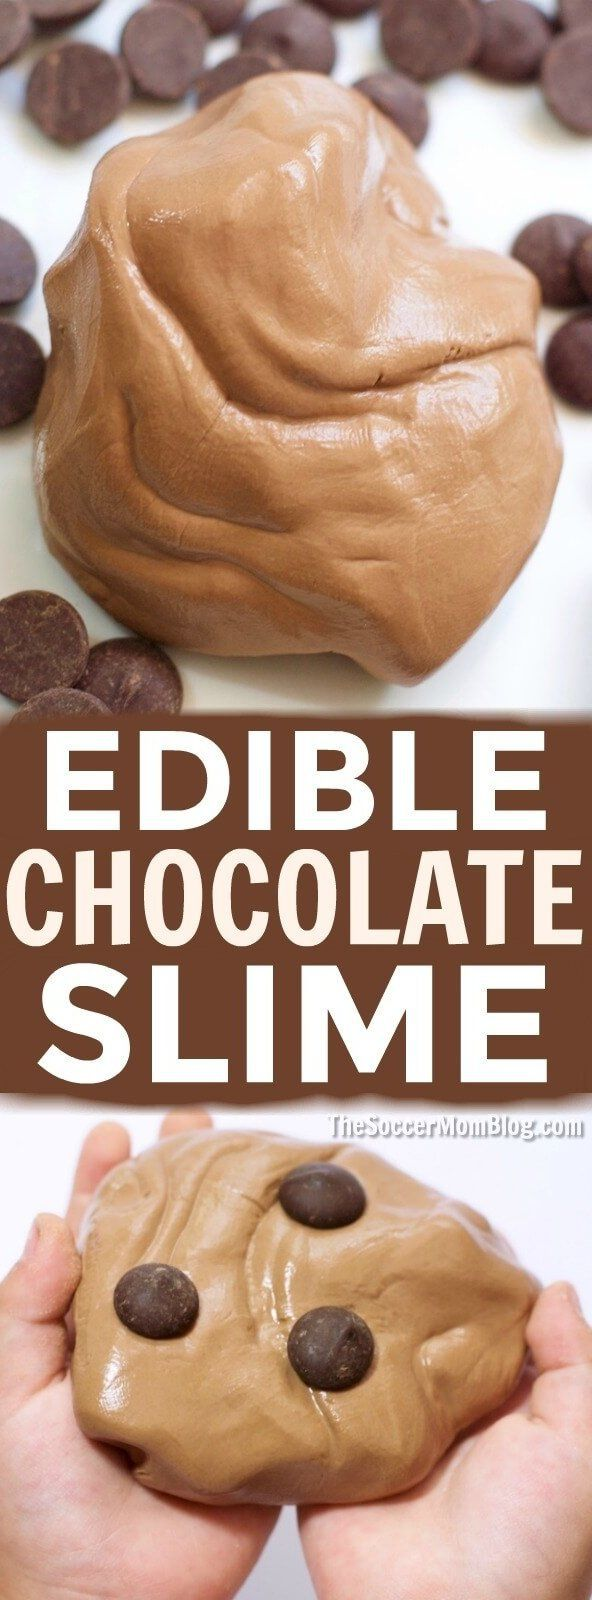 An easy edible chocolate slime recipe that smells just like your favorite decadent desserts! Only 3 simple ingredients for hours of sensory play! #ad #slime #chocolate